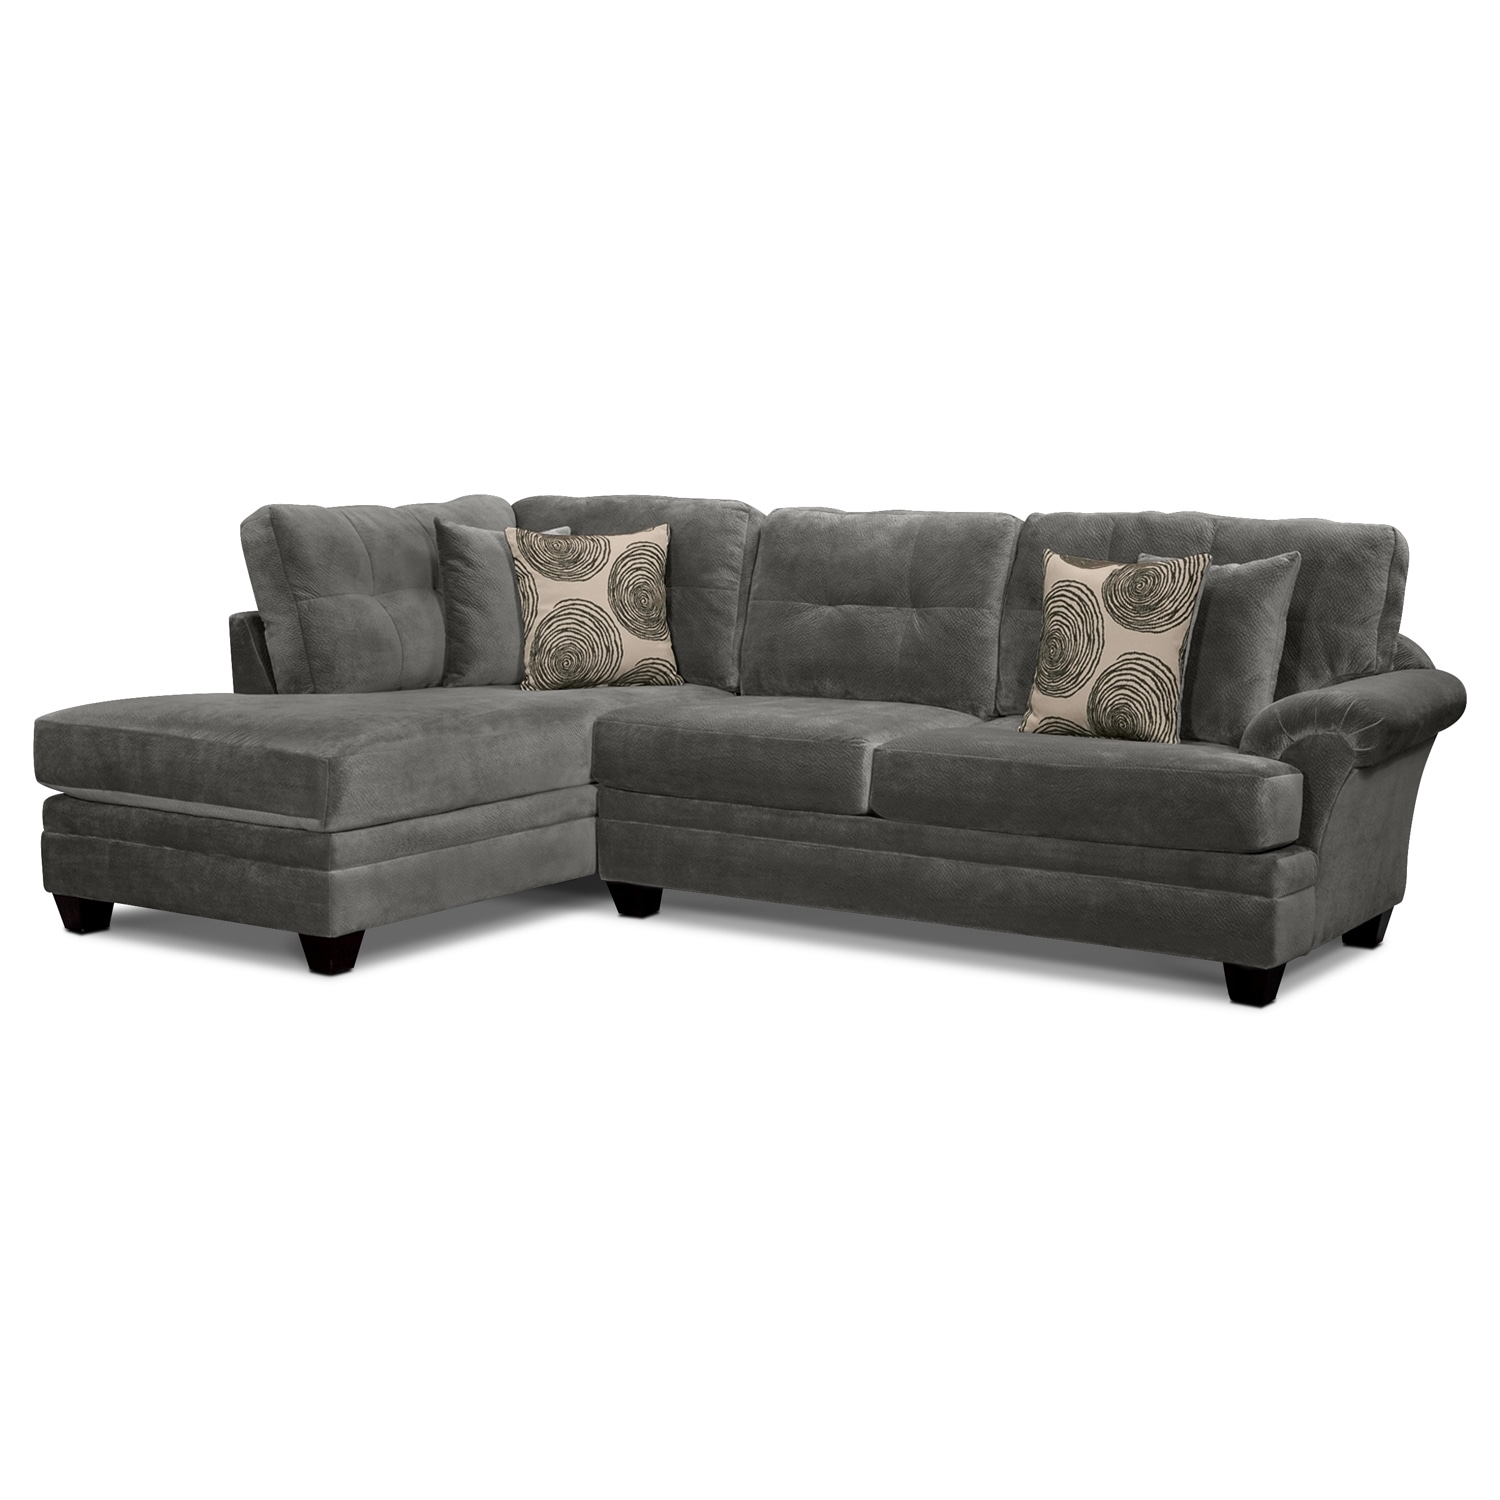 Cordelle 2 Piece Sectional With Left Facing Chaise – Gray | Value For Cosmos Grey 2 Piece Sectionals With Laf Chaise (View 18 of 25)